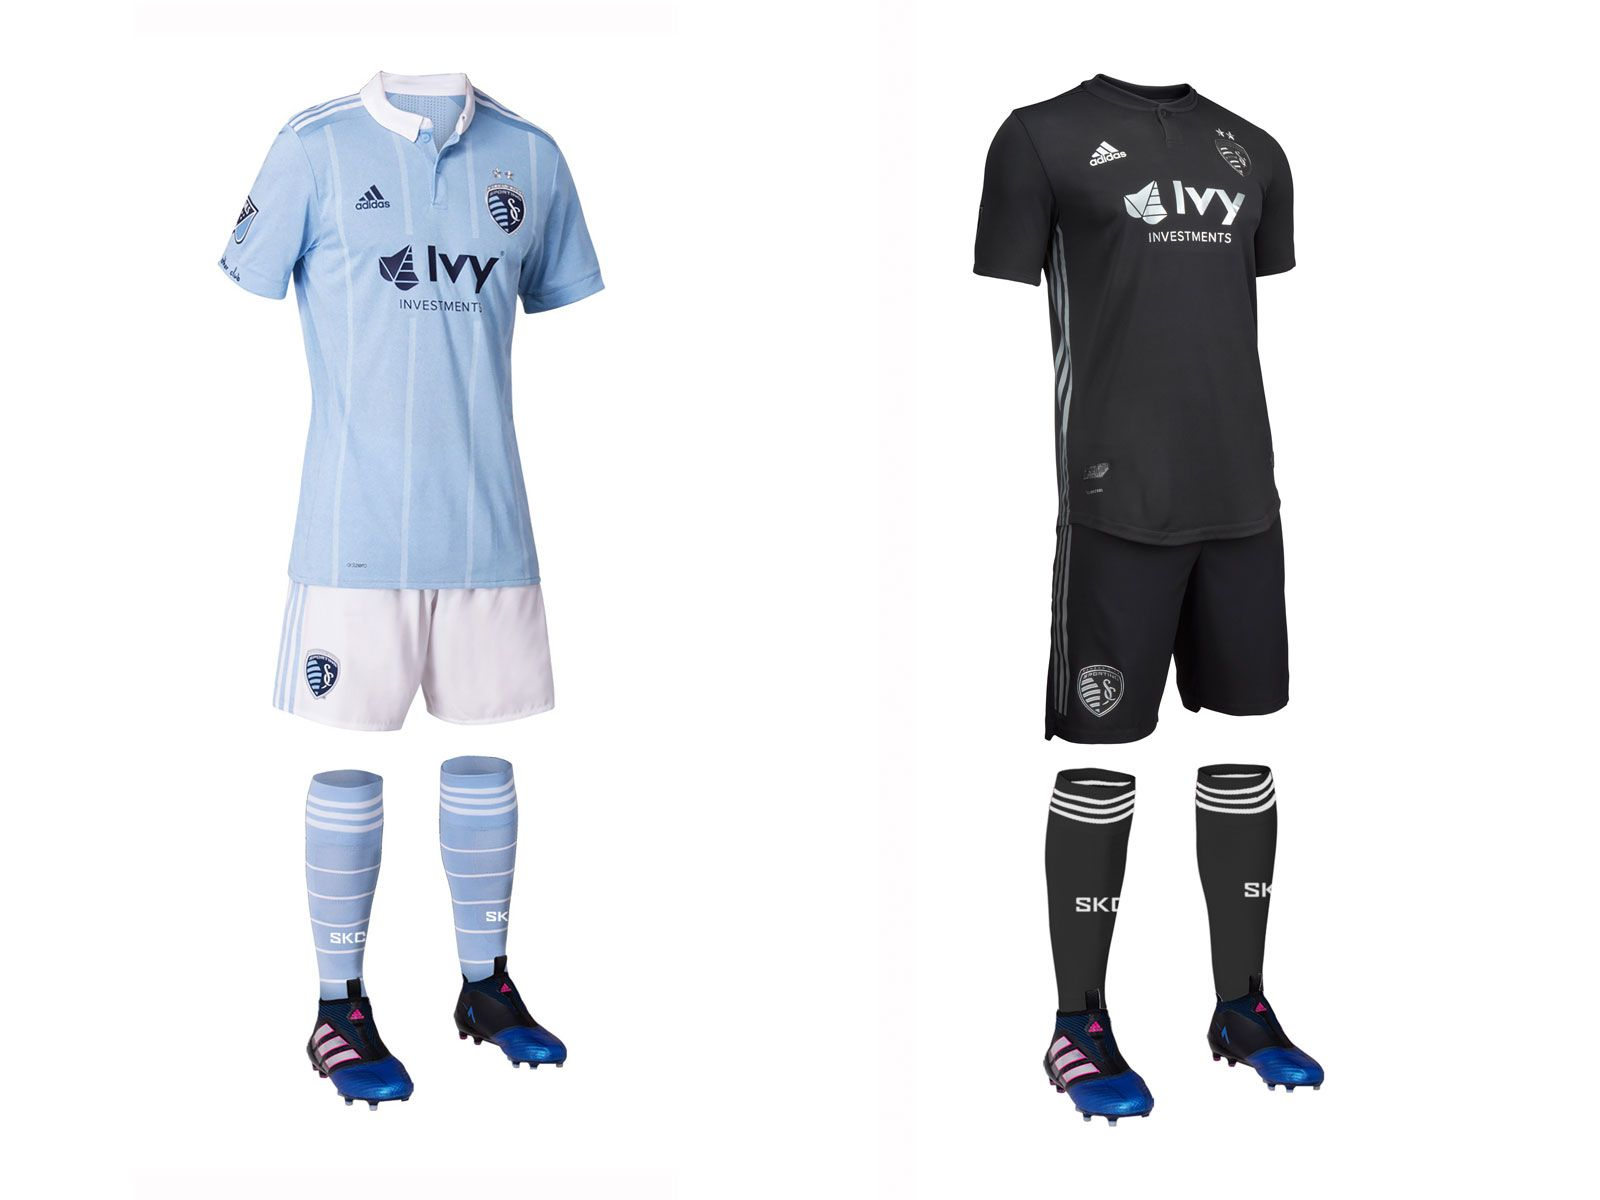 huge selection of 3f3a5 87f25 2018 MLS Kit Critique: Judging every team's uniforms | MLS ...